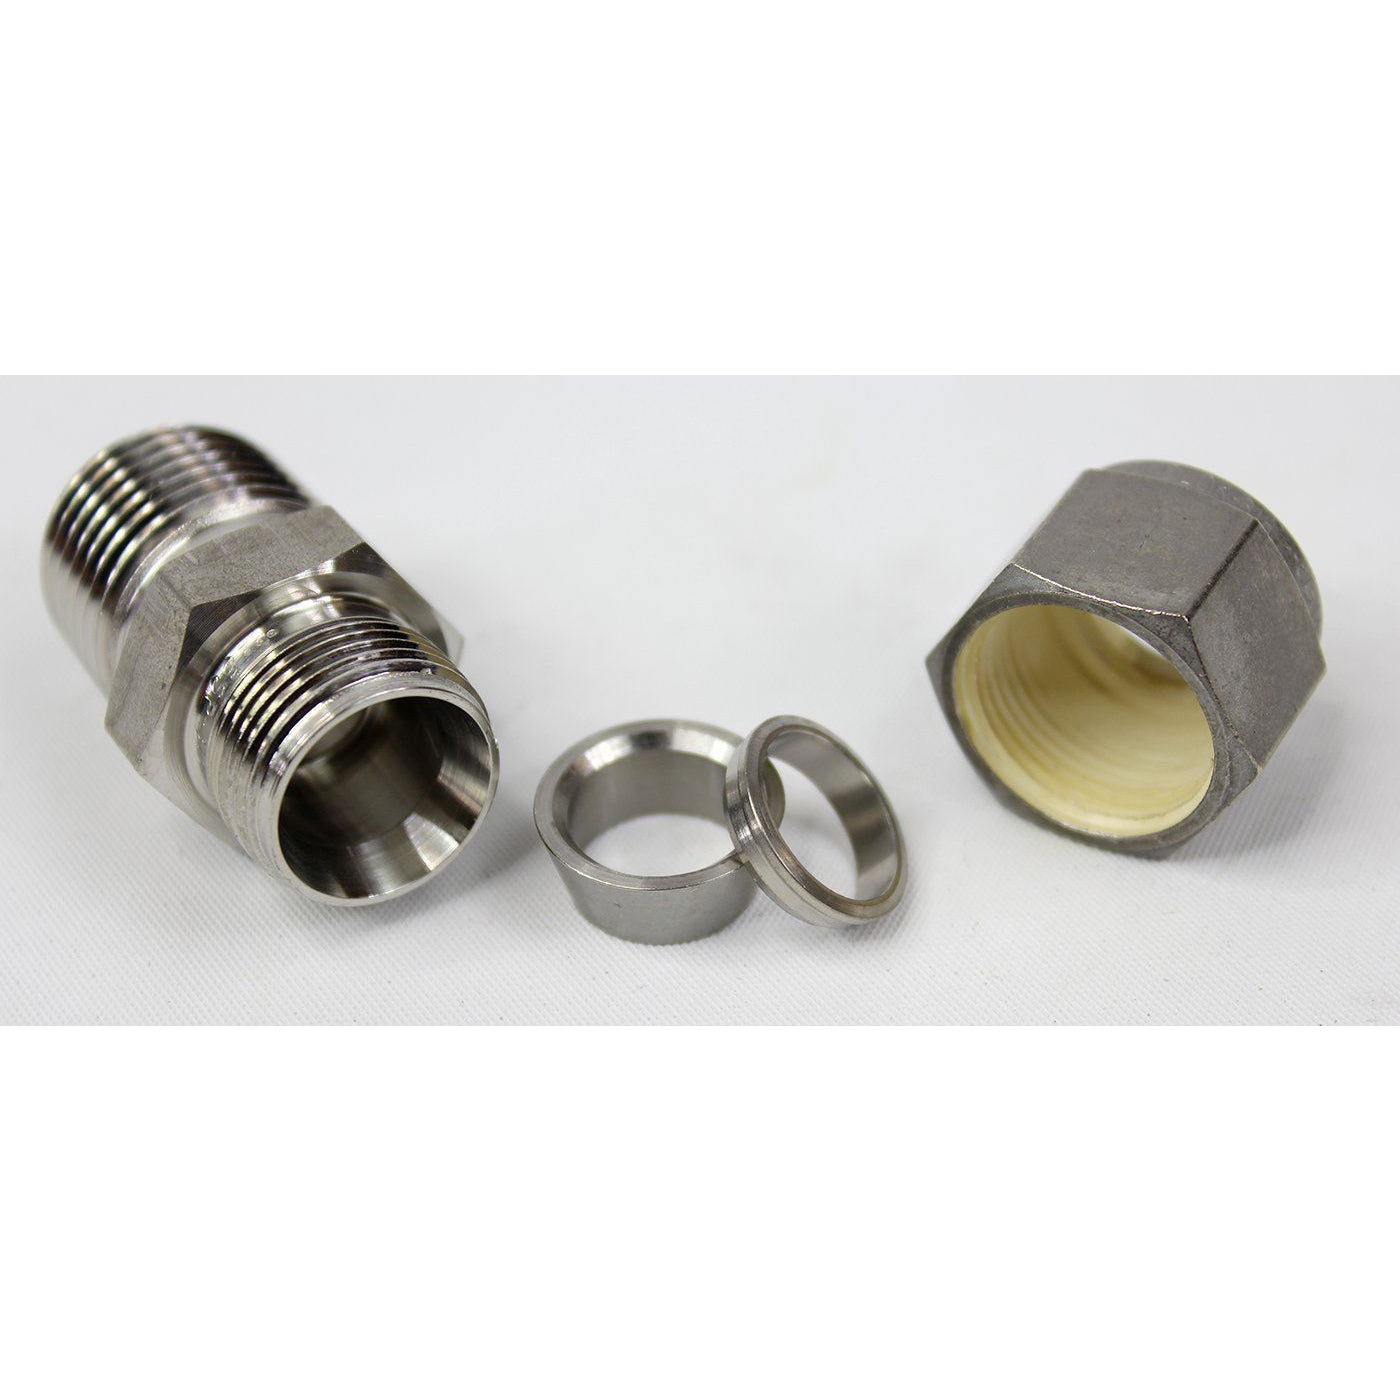 SSP - Male Connector Bore Through Shop All Categories SSP Corporation